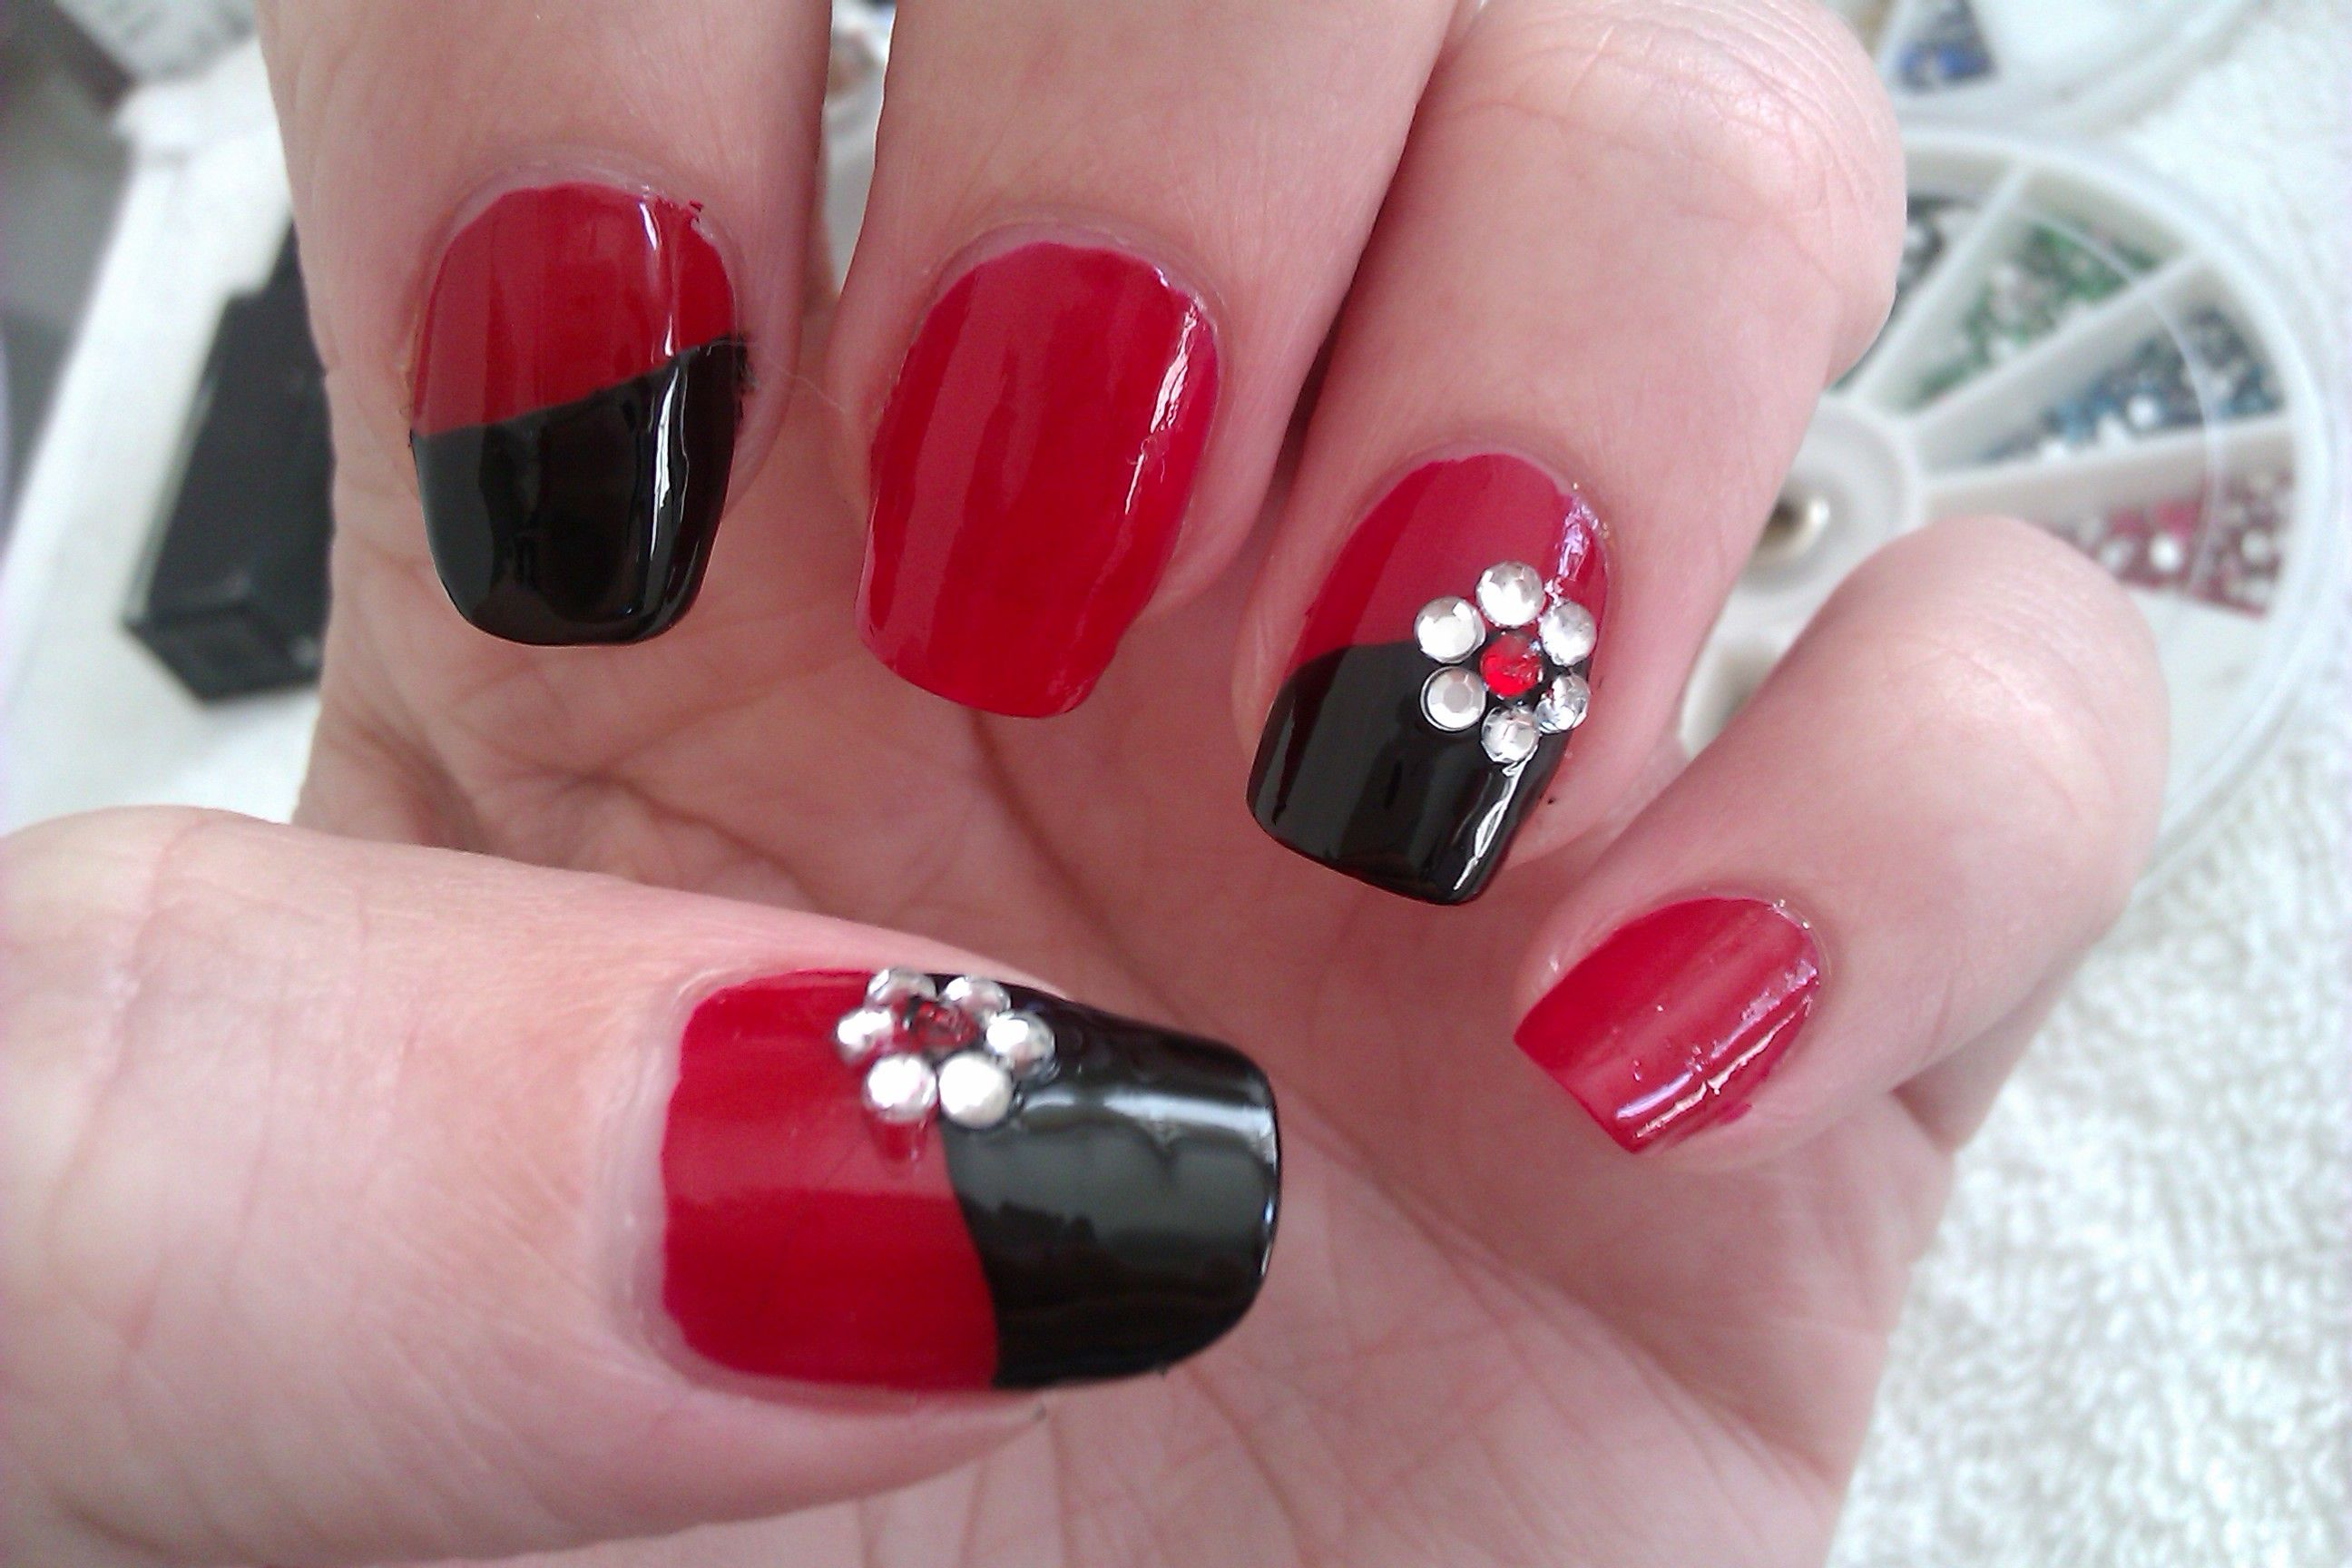 https://hotnails.press/wp-content/uploads/2016/04/easy-nail-art ...